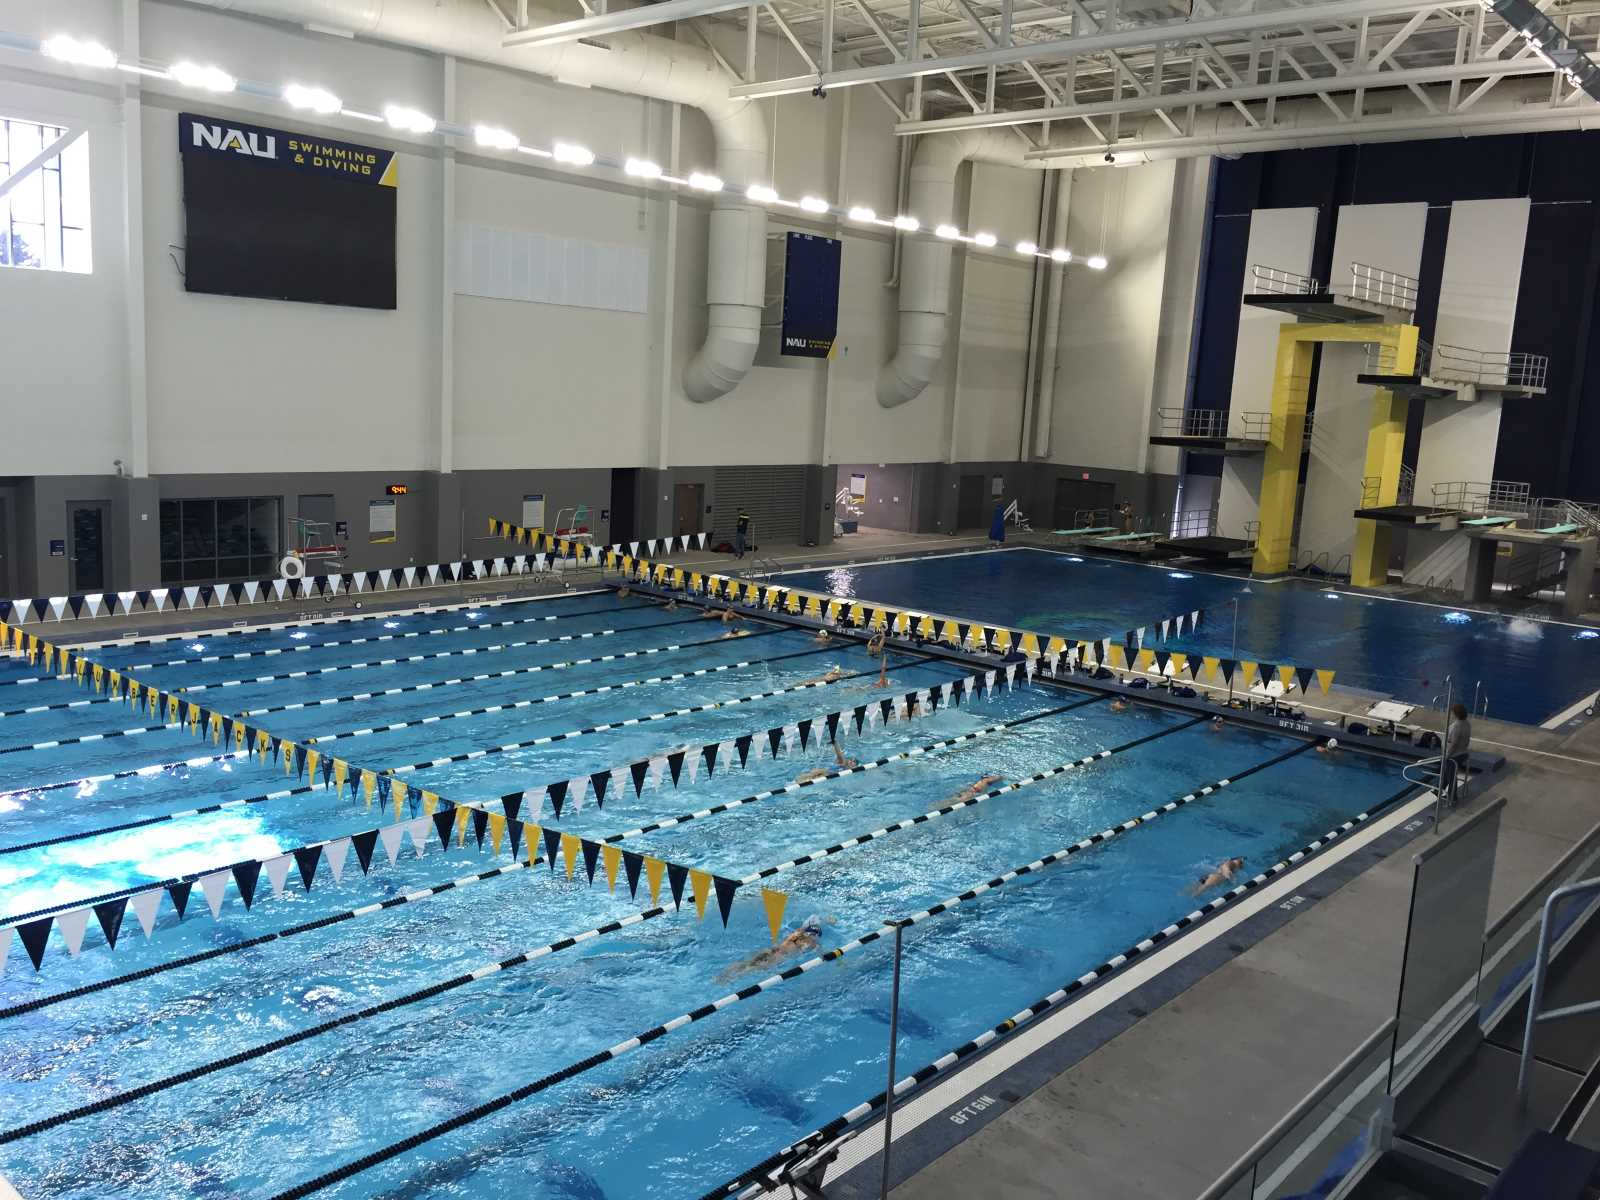 Northern Arizona's Brand New Aquatic Facility To Be Unveiled - Swimming  World News